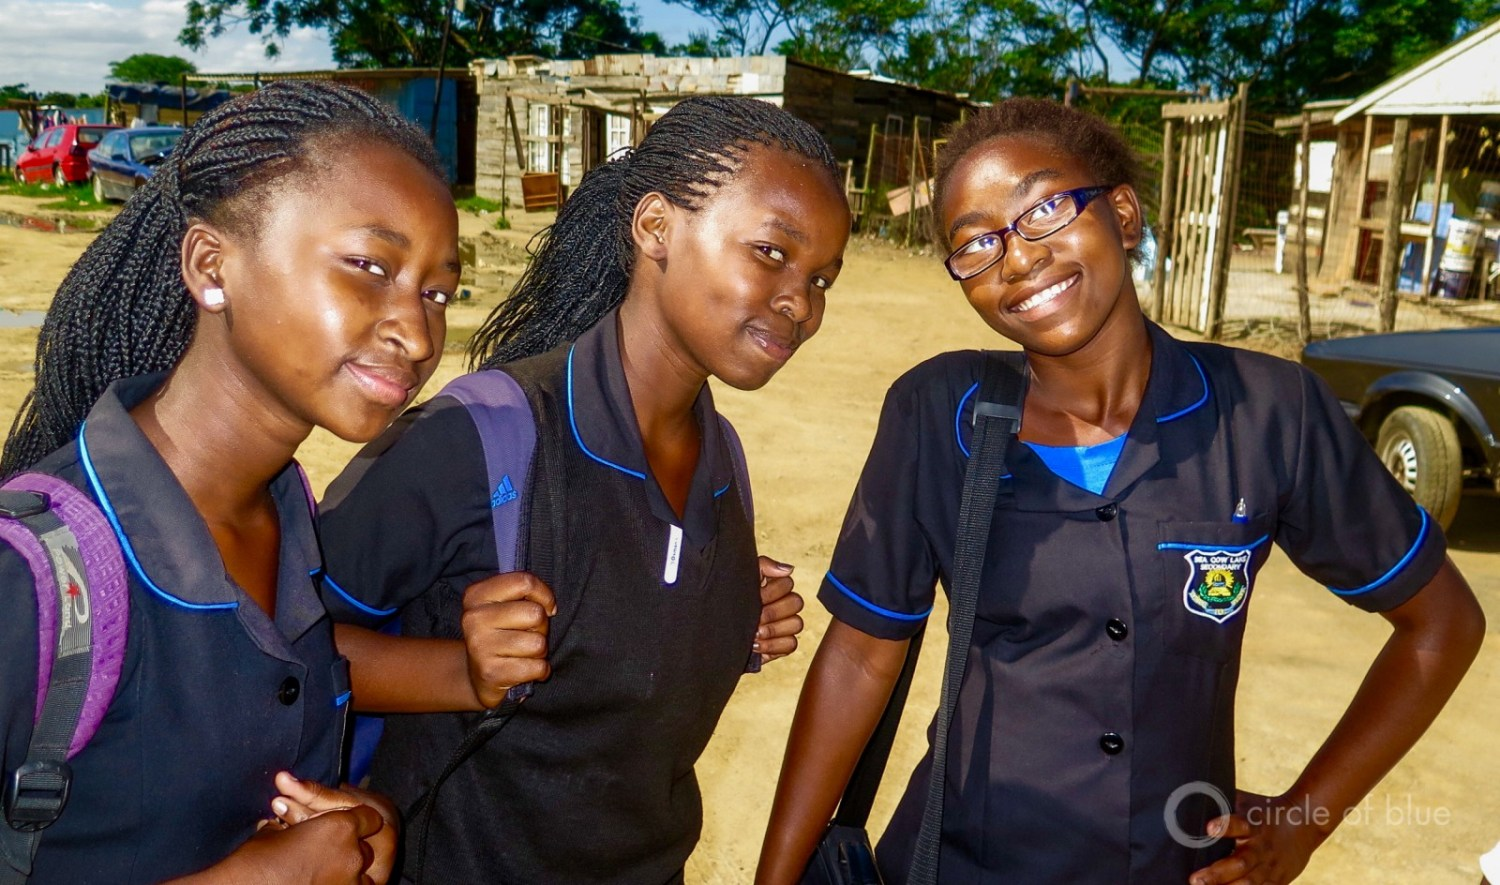 Schoolgirls from an informal settlement in Durban.